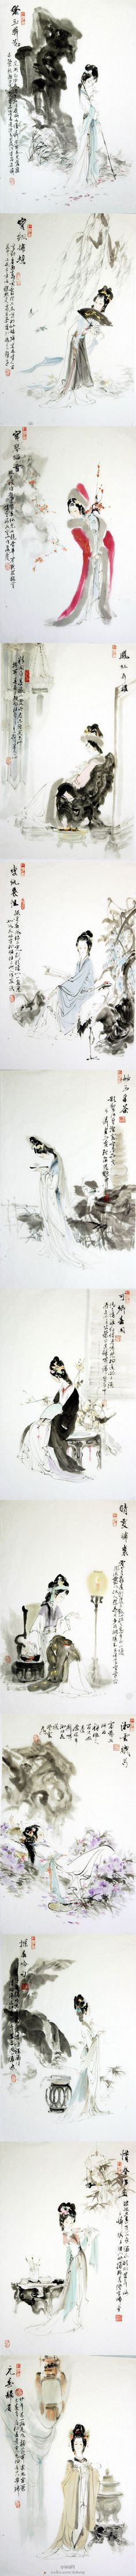 12 girls in Dream of Red Chamber Level: for all age( before or beyond middle school students) Cao xueqin, the author of Dream of red chamber, used a lot of words to describe the 12 girls who have different destiny at last. Every girl's character differs from each other. Try to get some information from this painting.